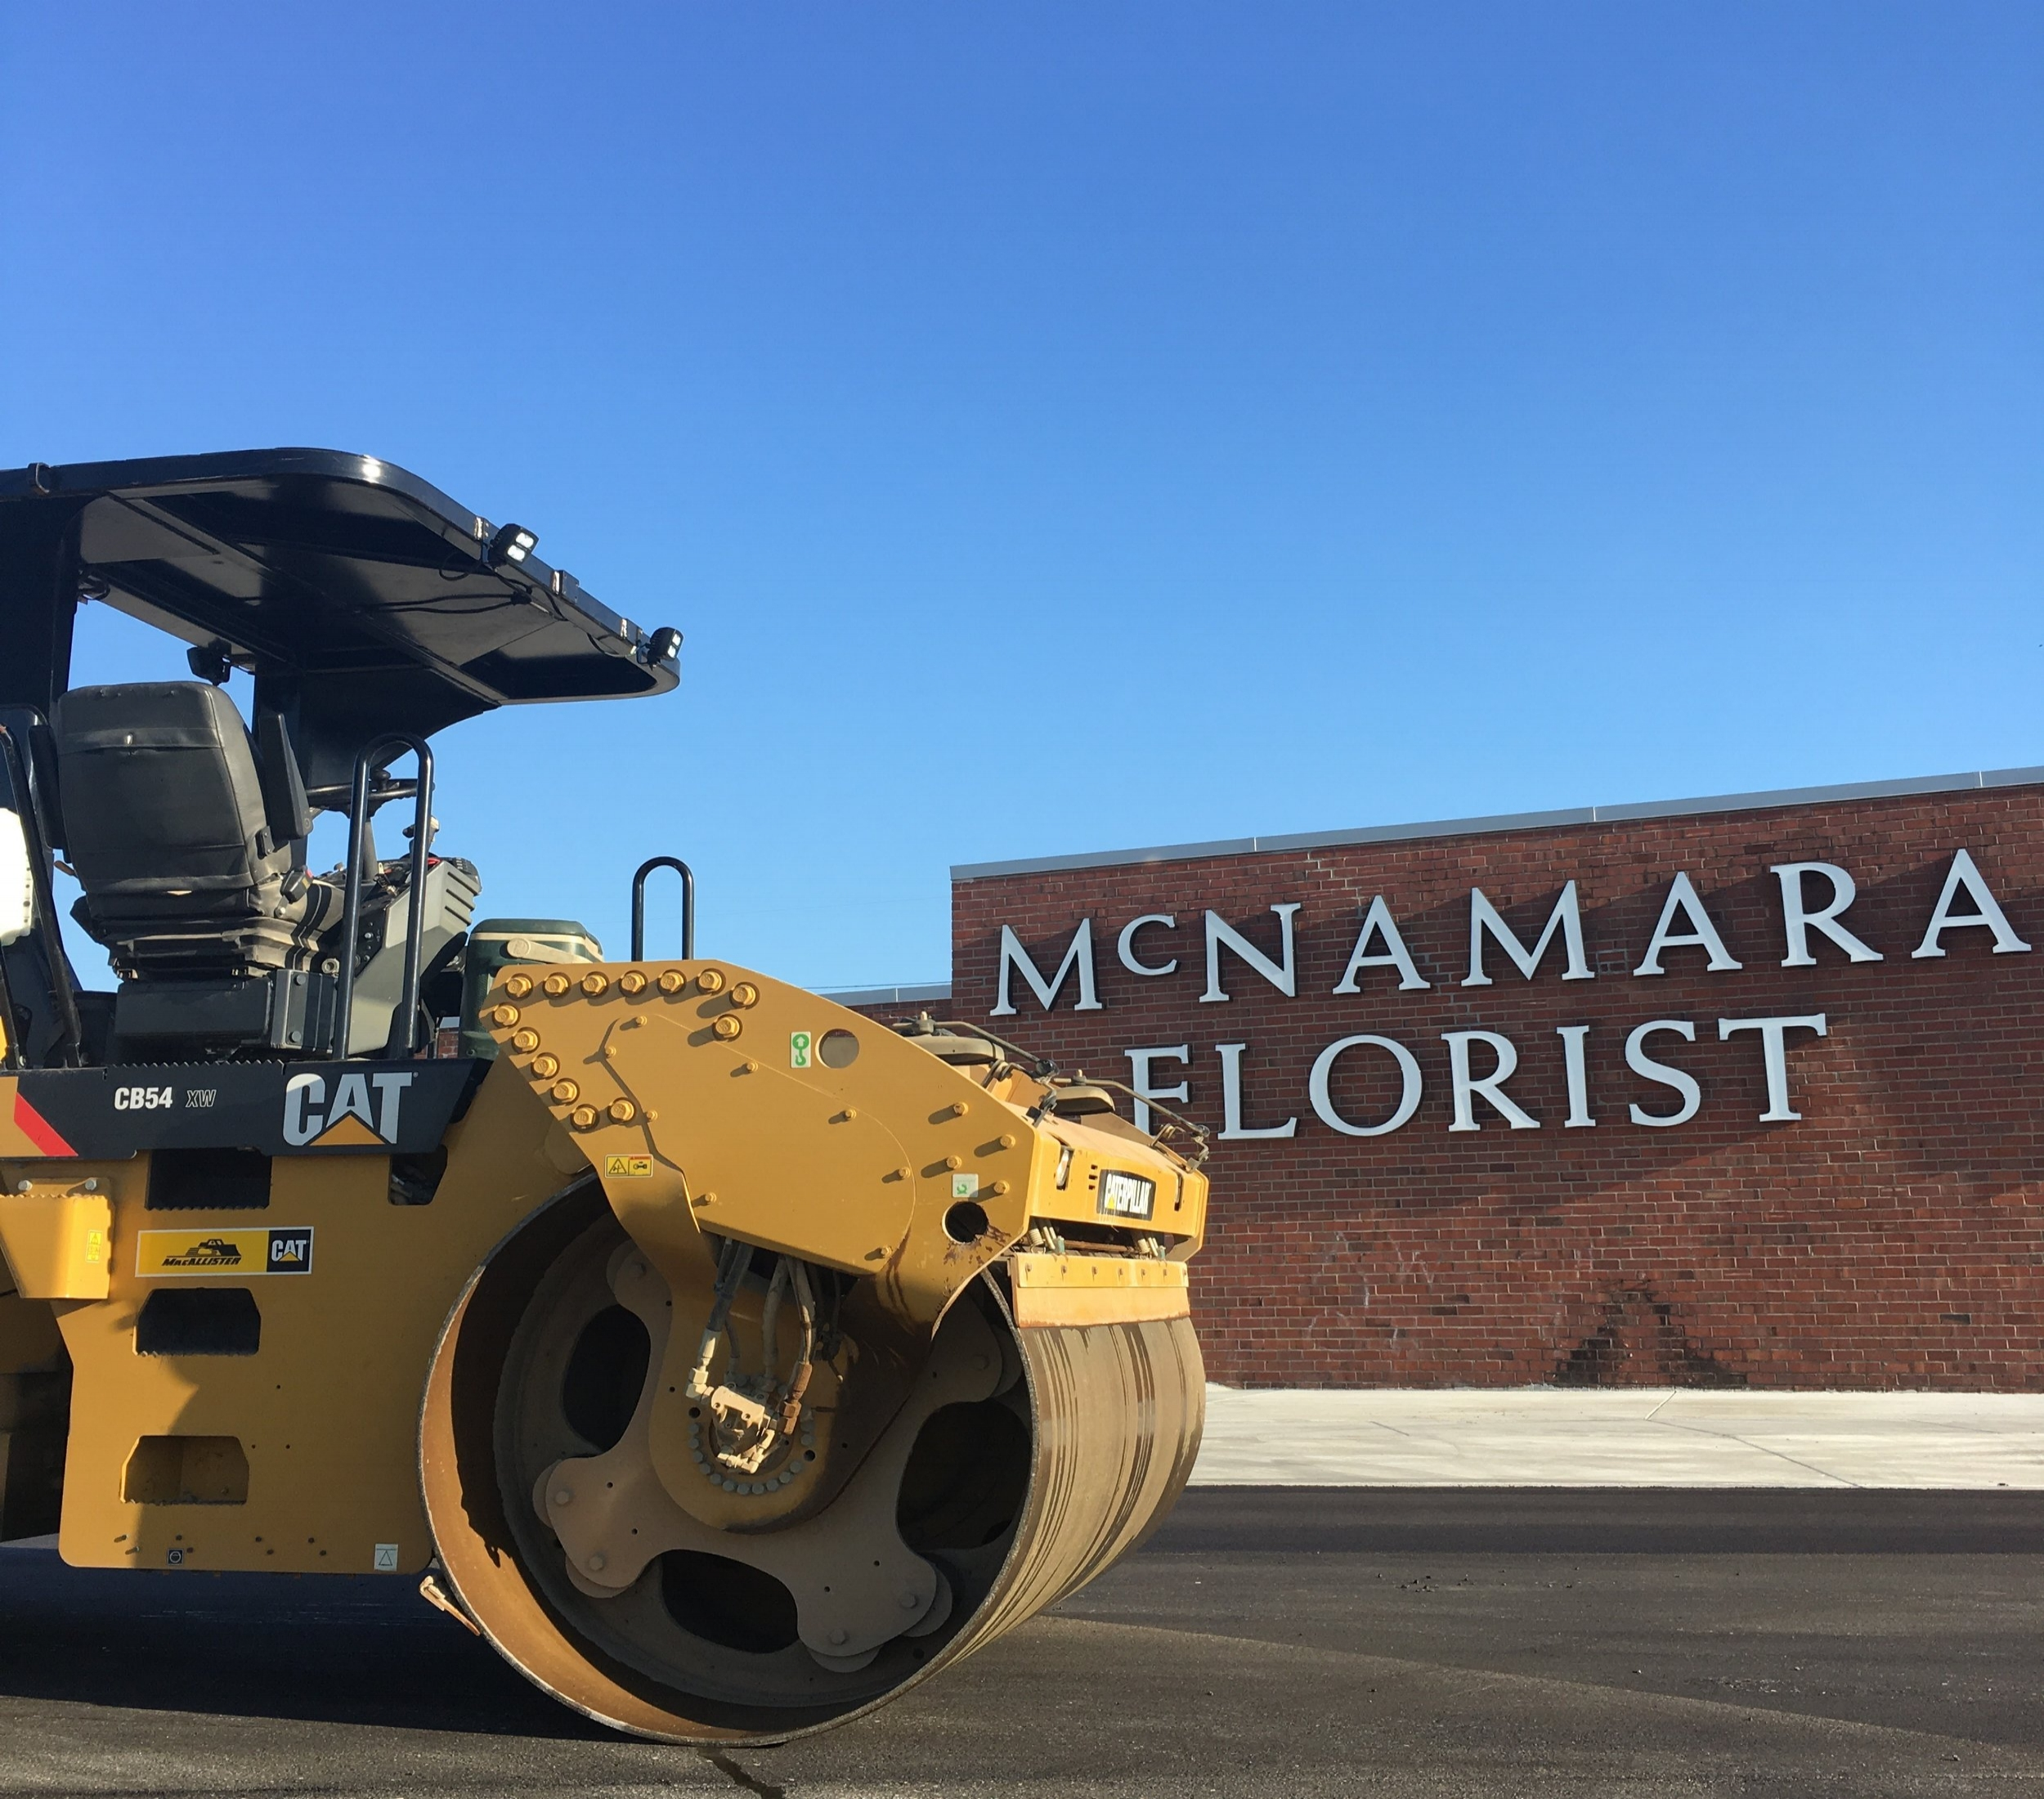 Tax Increment Financing (TIF) funding improved Ludlow Street as part the relocation and expansion of McNamara Florist